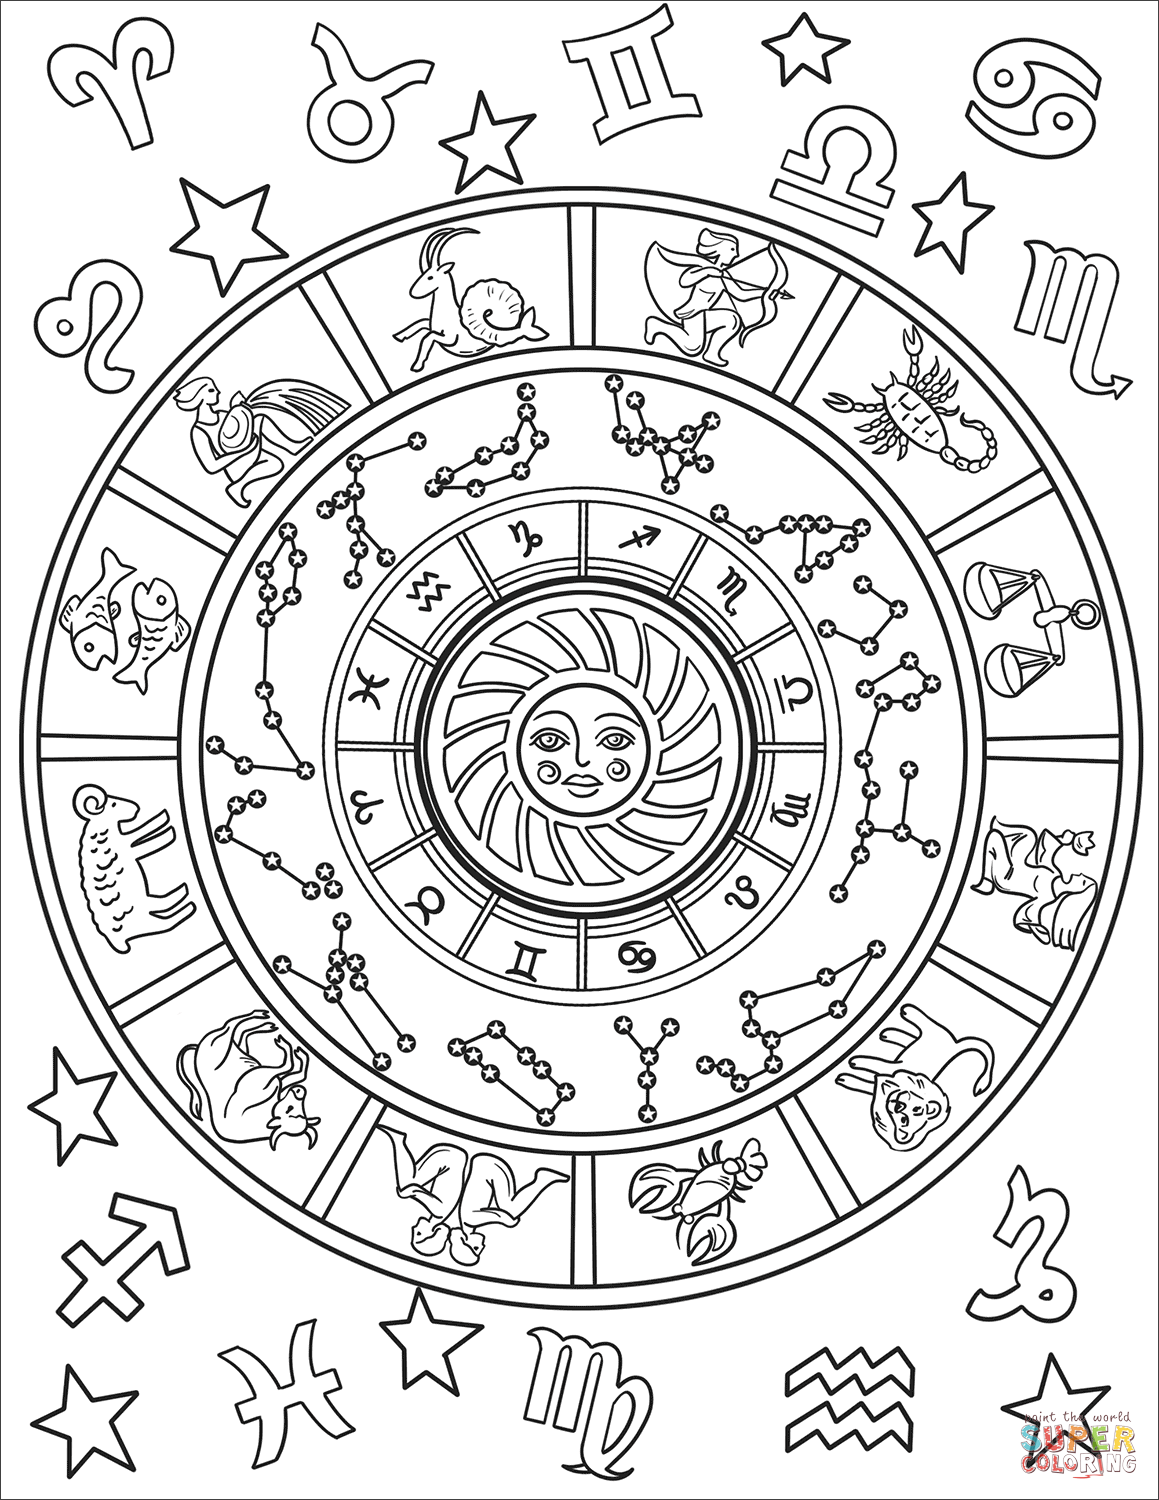 All Zodiac Signs Super Coloring Witch Coloring Pages Zodiac Signs Colors Coloring Pages [ 1500 x 1159 Pixel ]